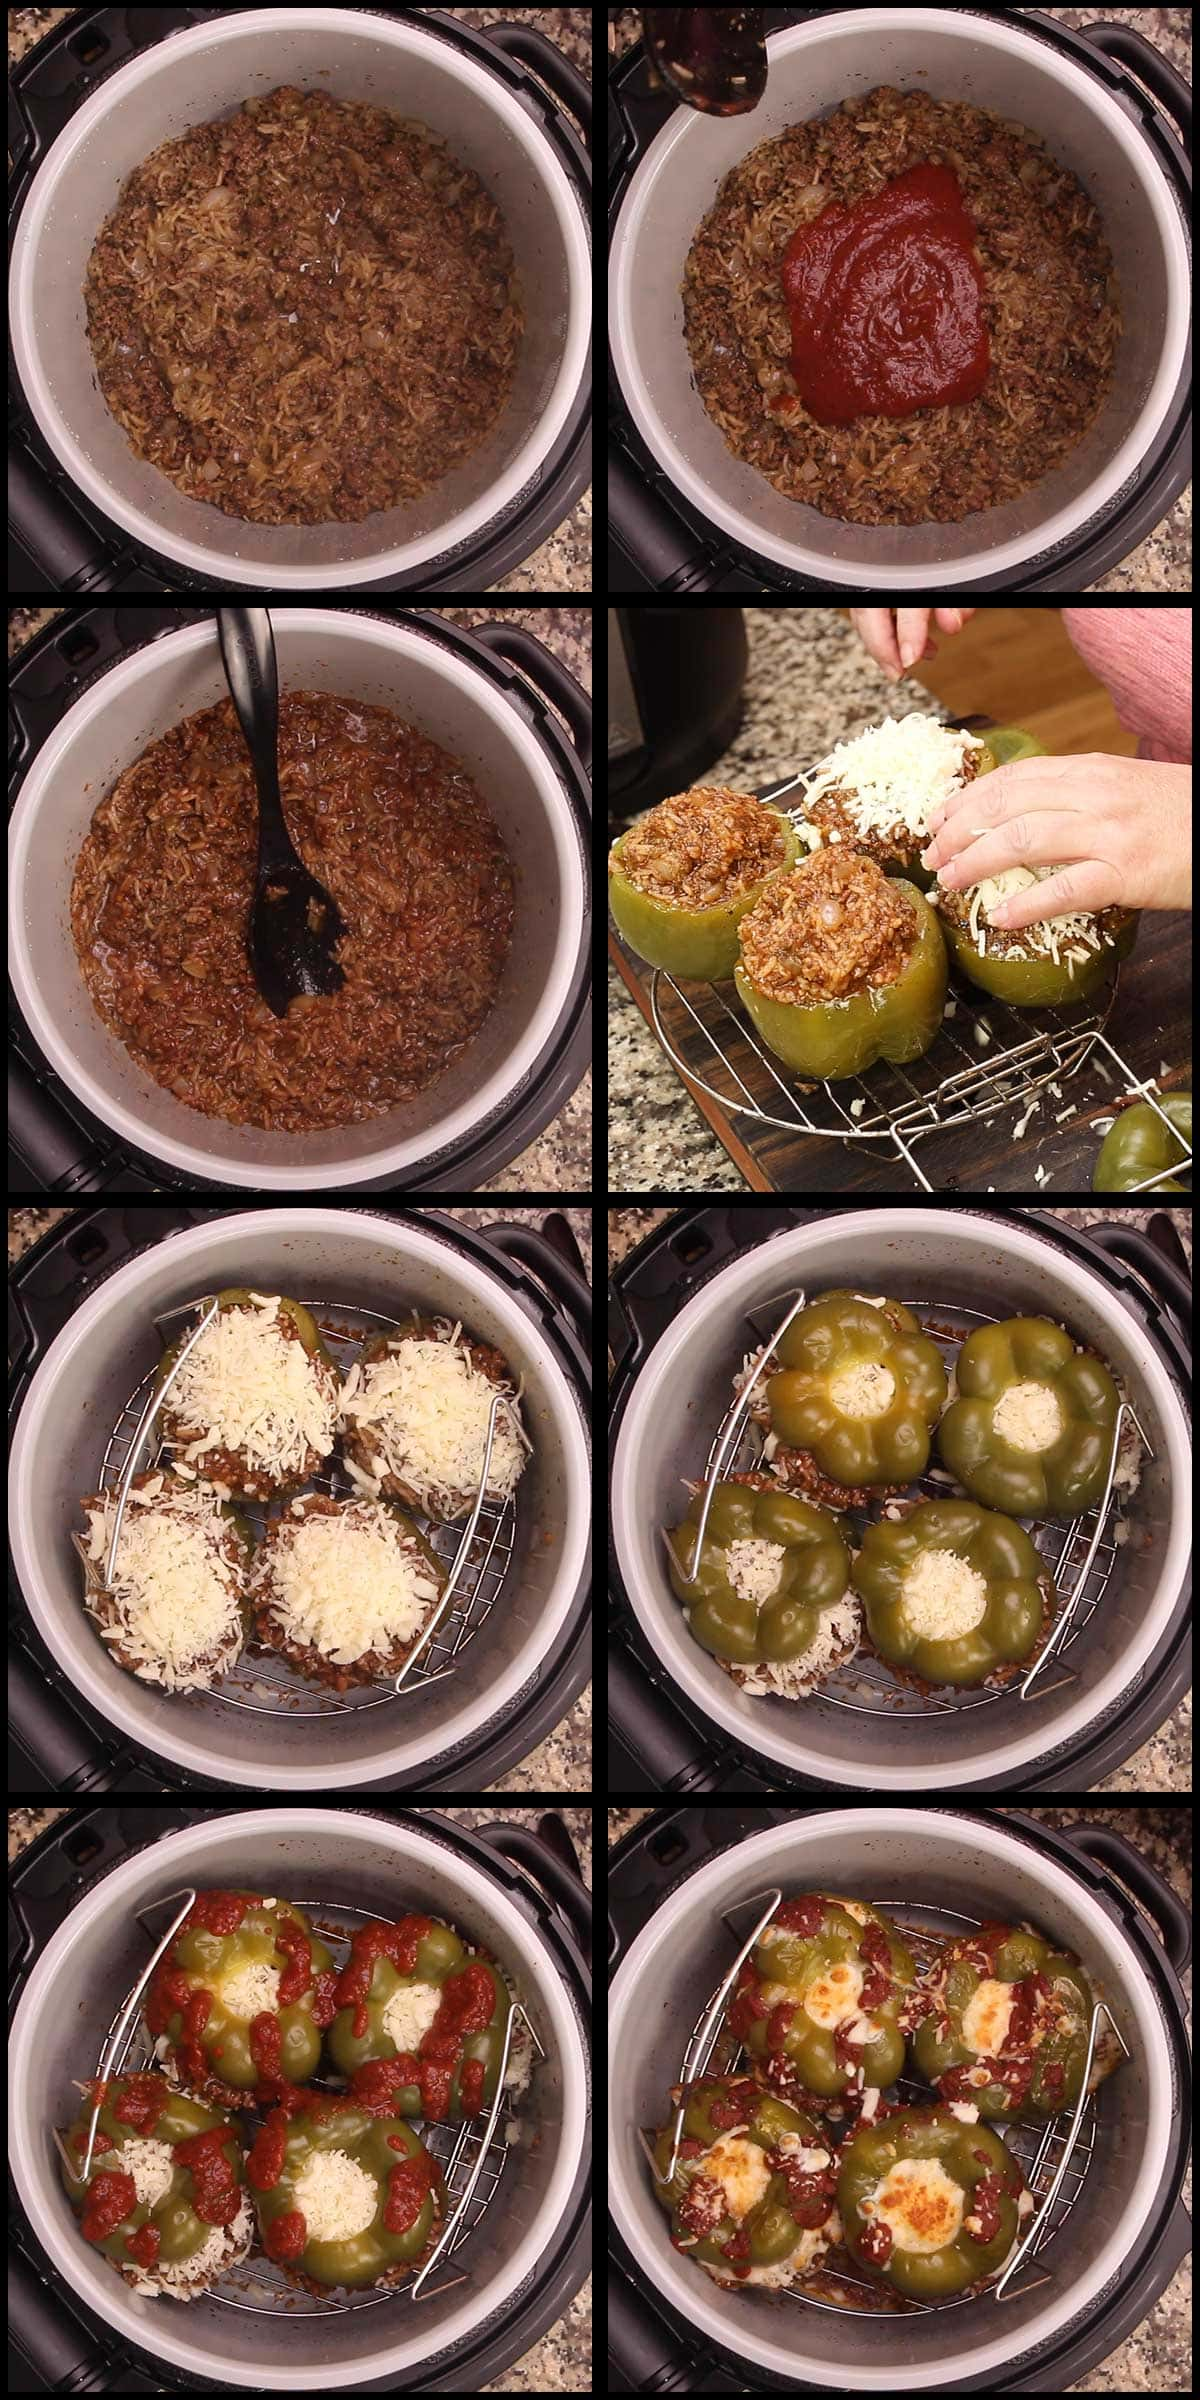 stuffing the peppers and broiling the cheese on top